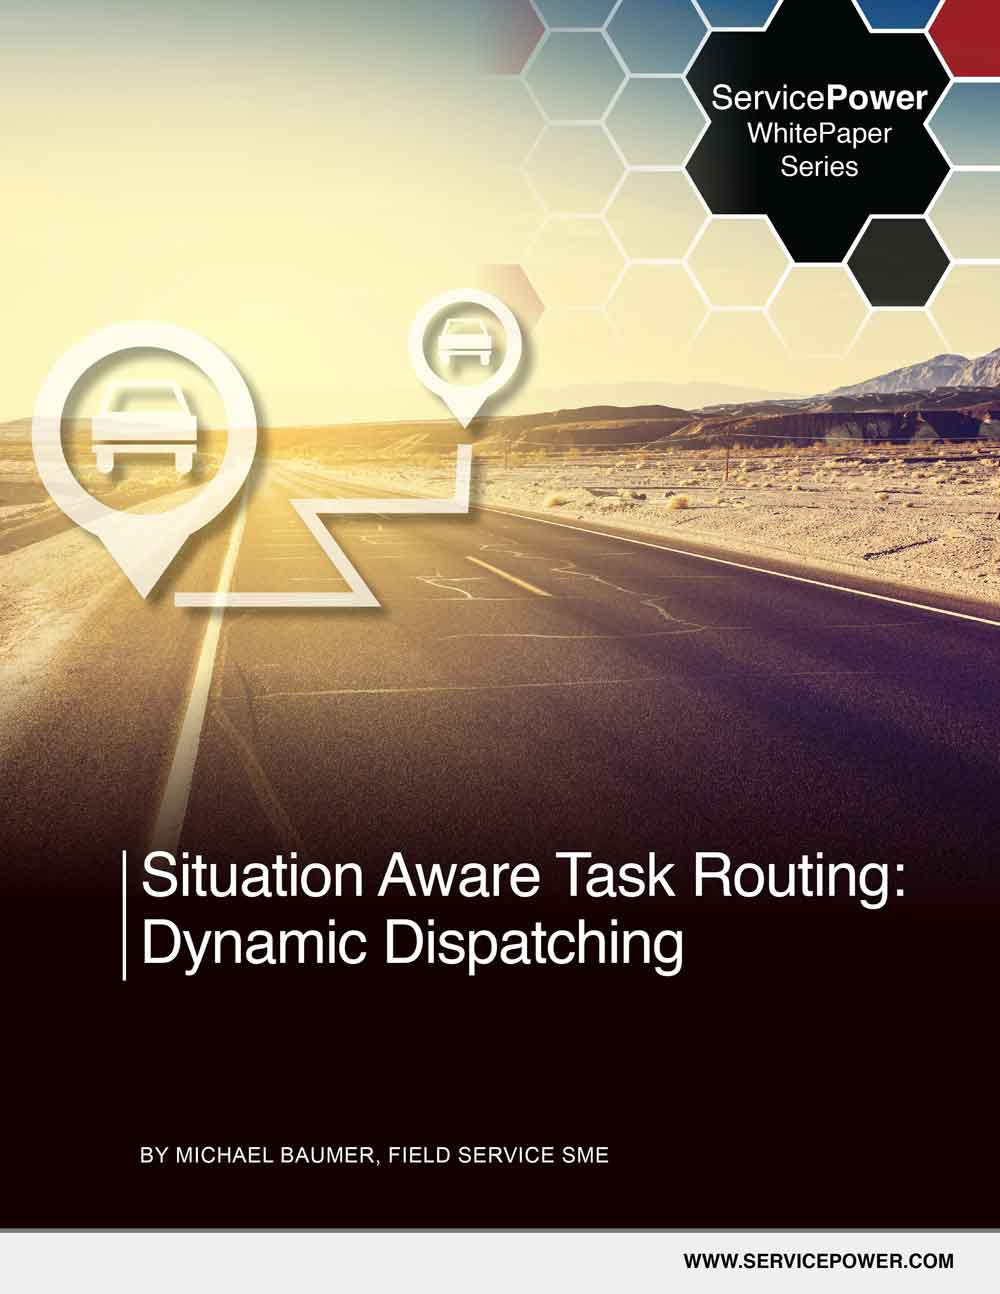 Free Whitepaper - Situation Aware Task Routing: Dynamic Dispatching